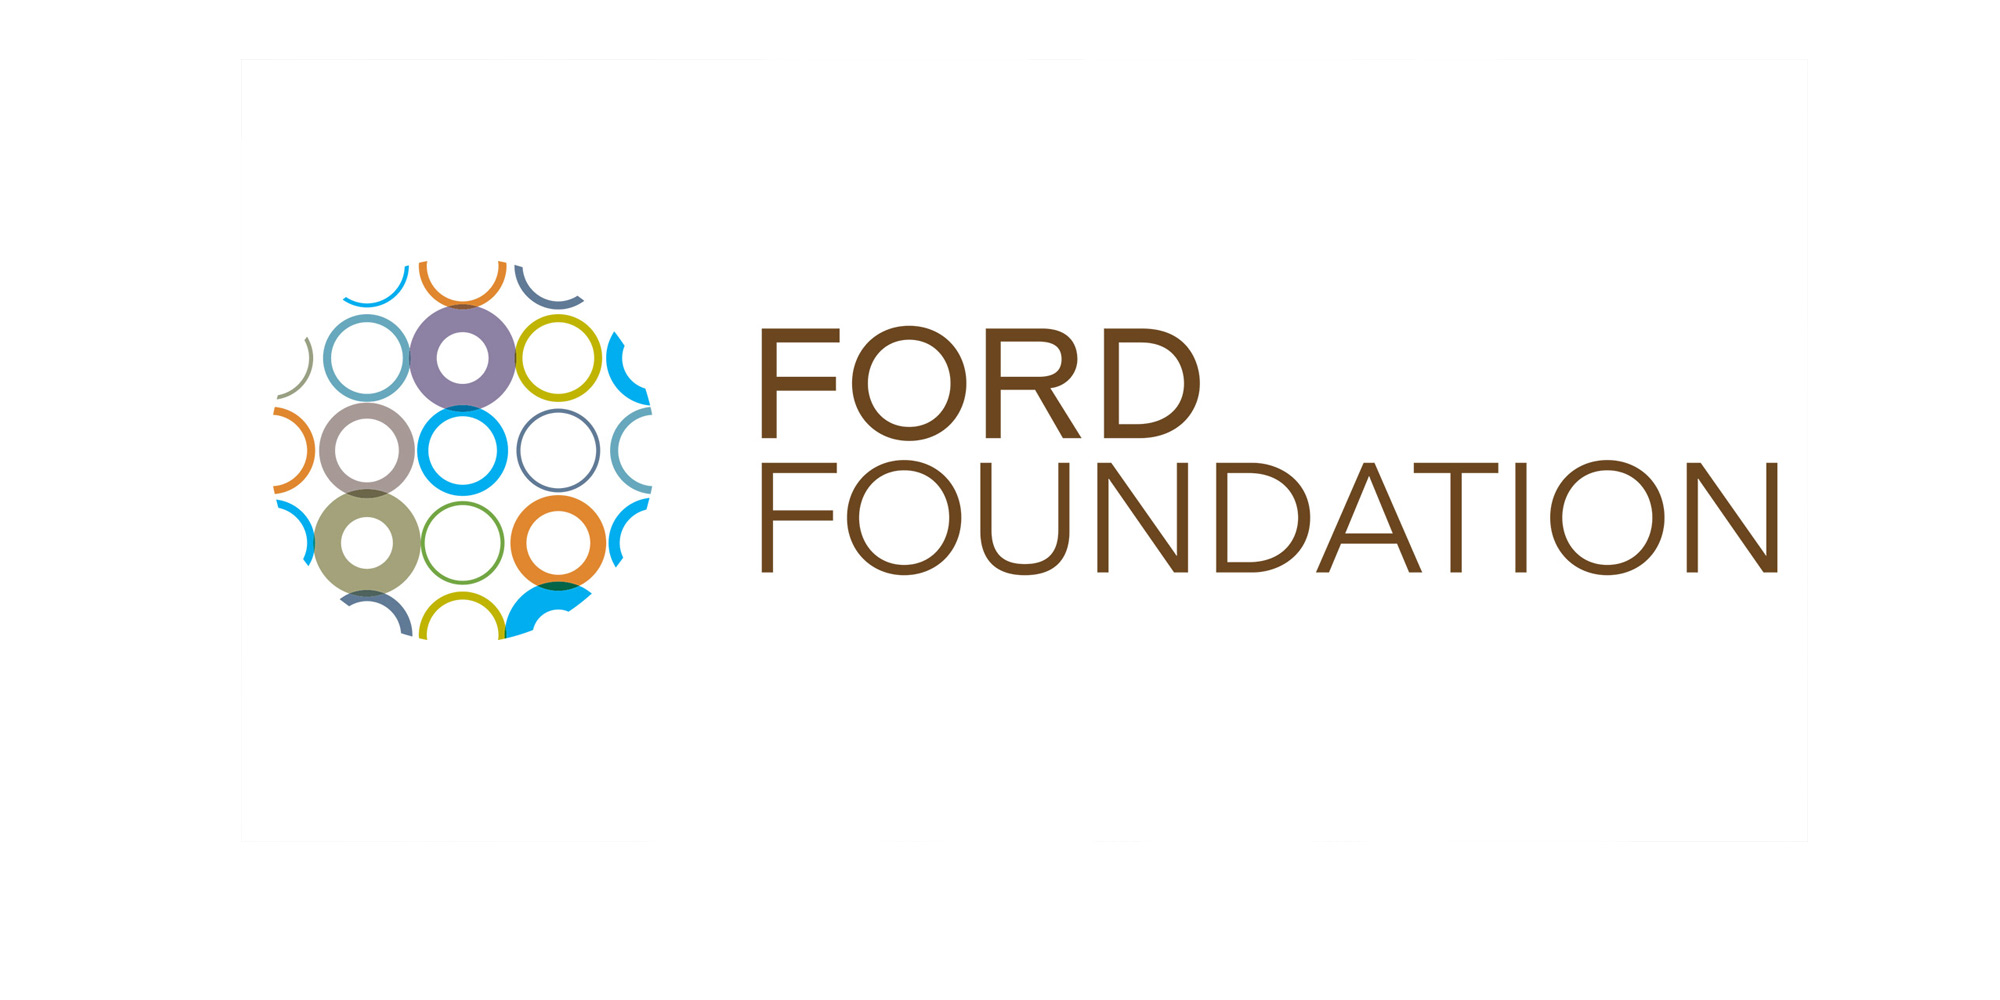 ford foundation ploughs  1 billion into mission related investments